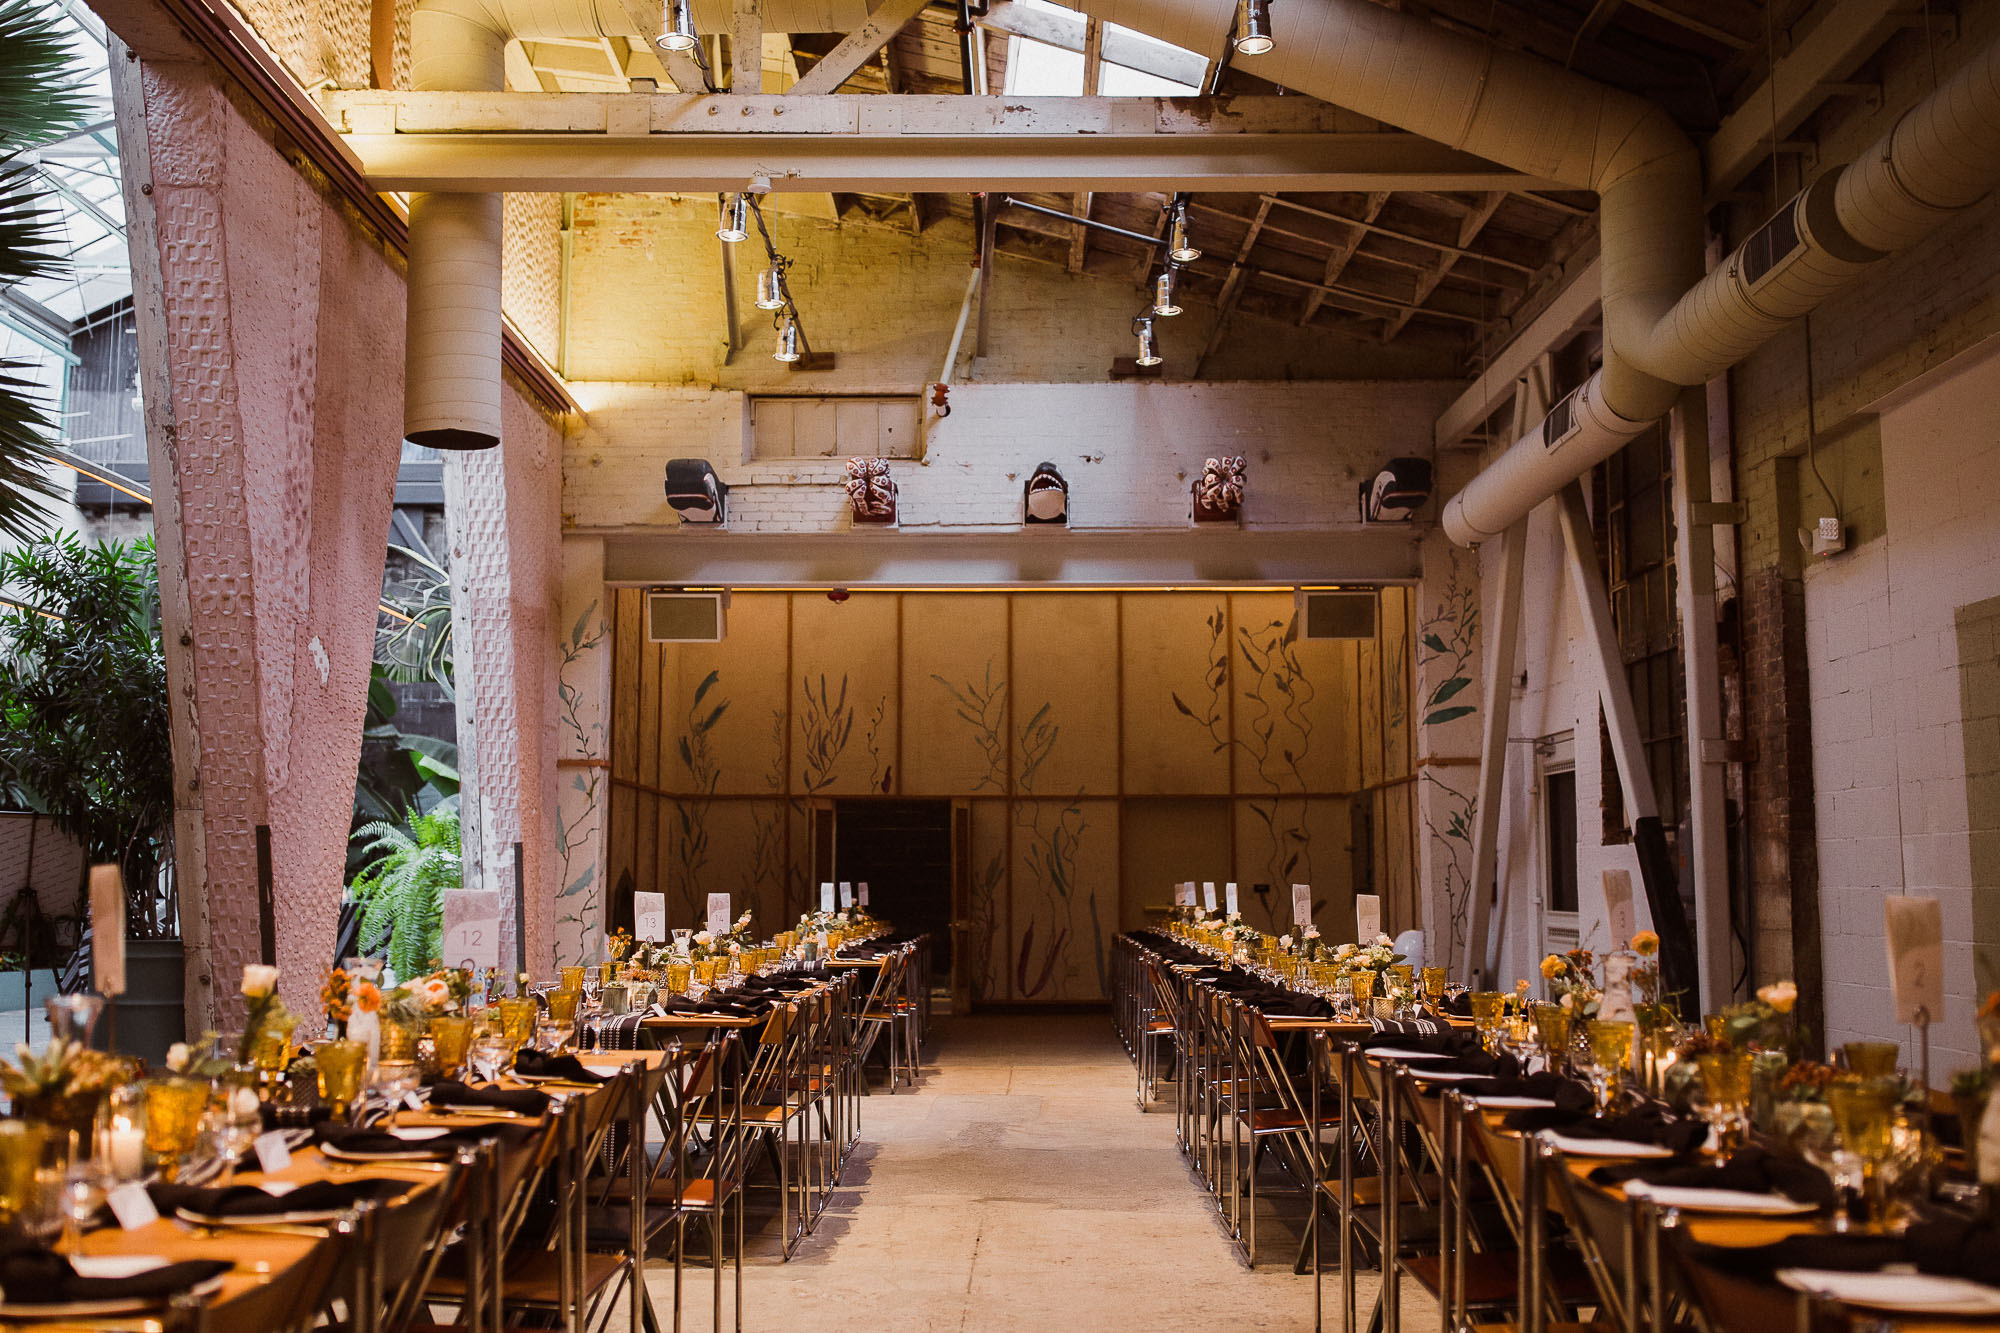 The wedding reception space at the Grass Room DTLA